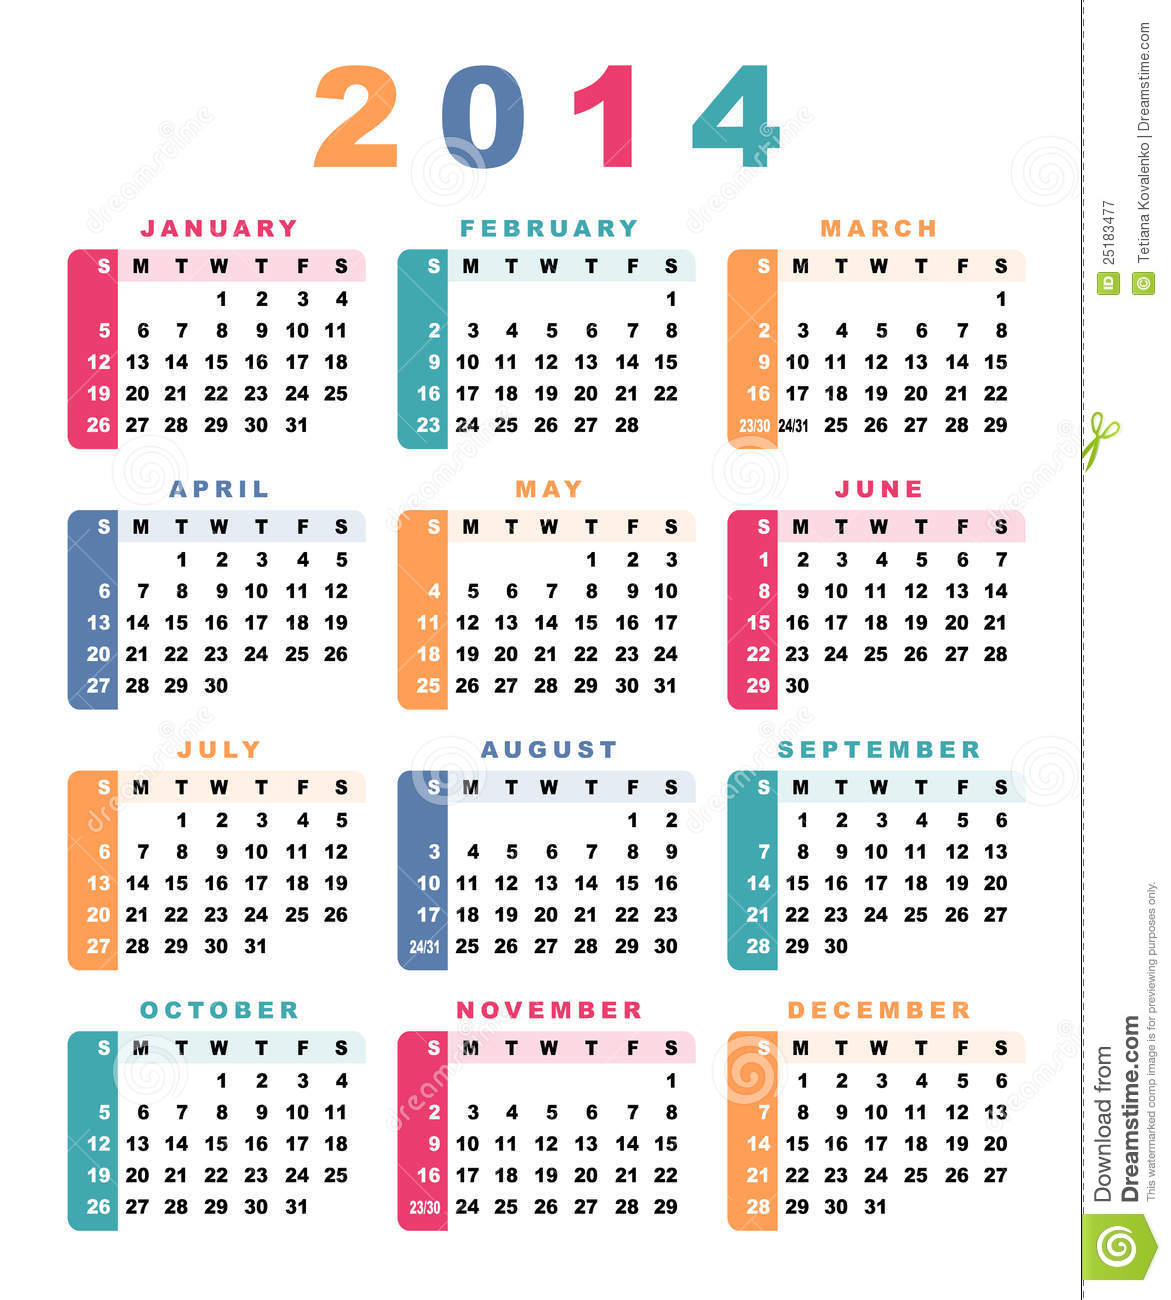 2014 Calendar with Week Numbers